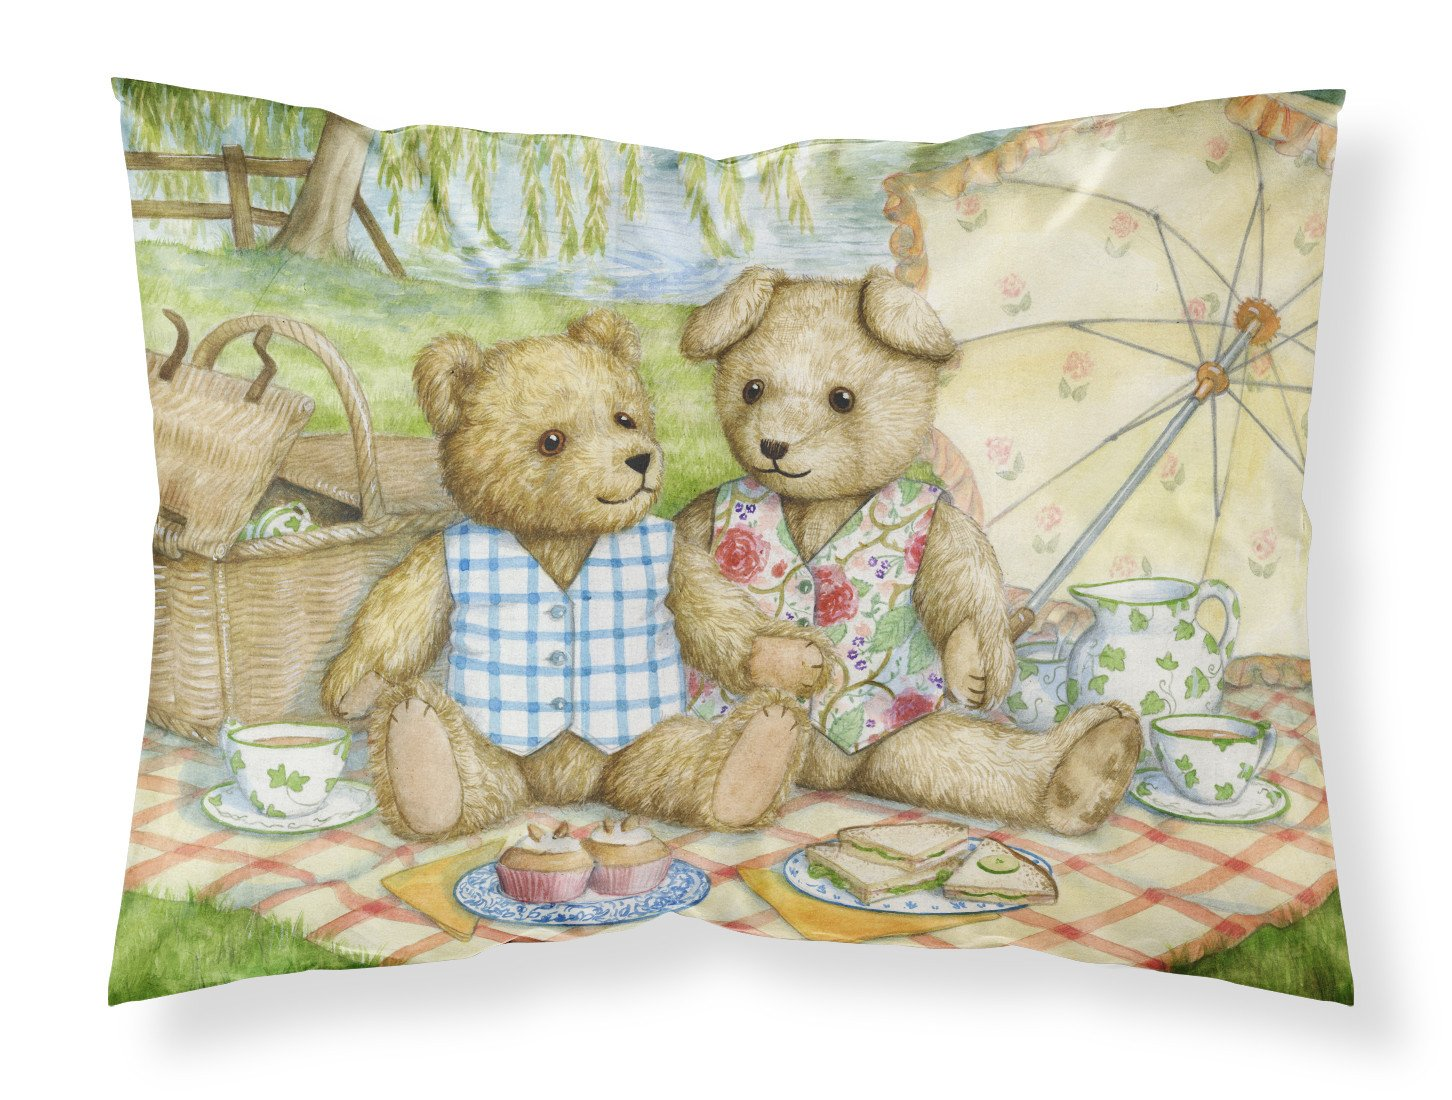 Summertime Teddy Bears Picnic Fabric Standard Pillowcase CDCO0308PILLOWCASE by Caroline's Treasures